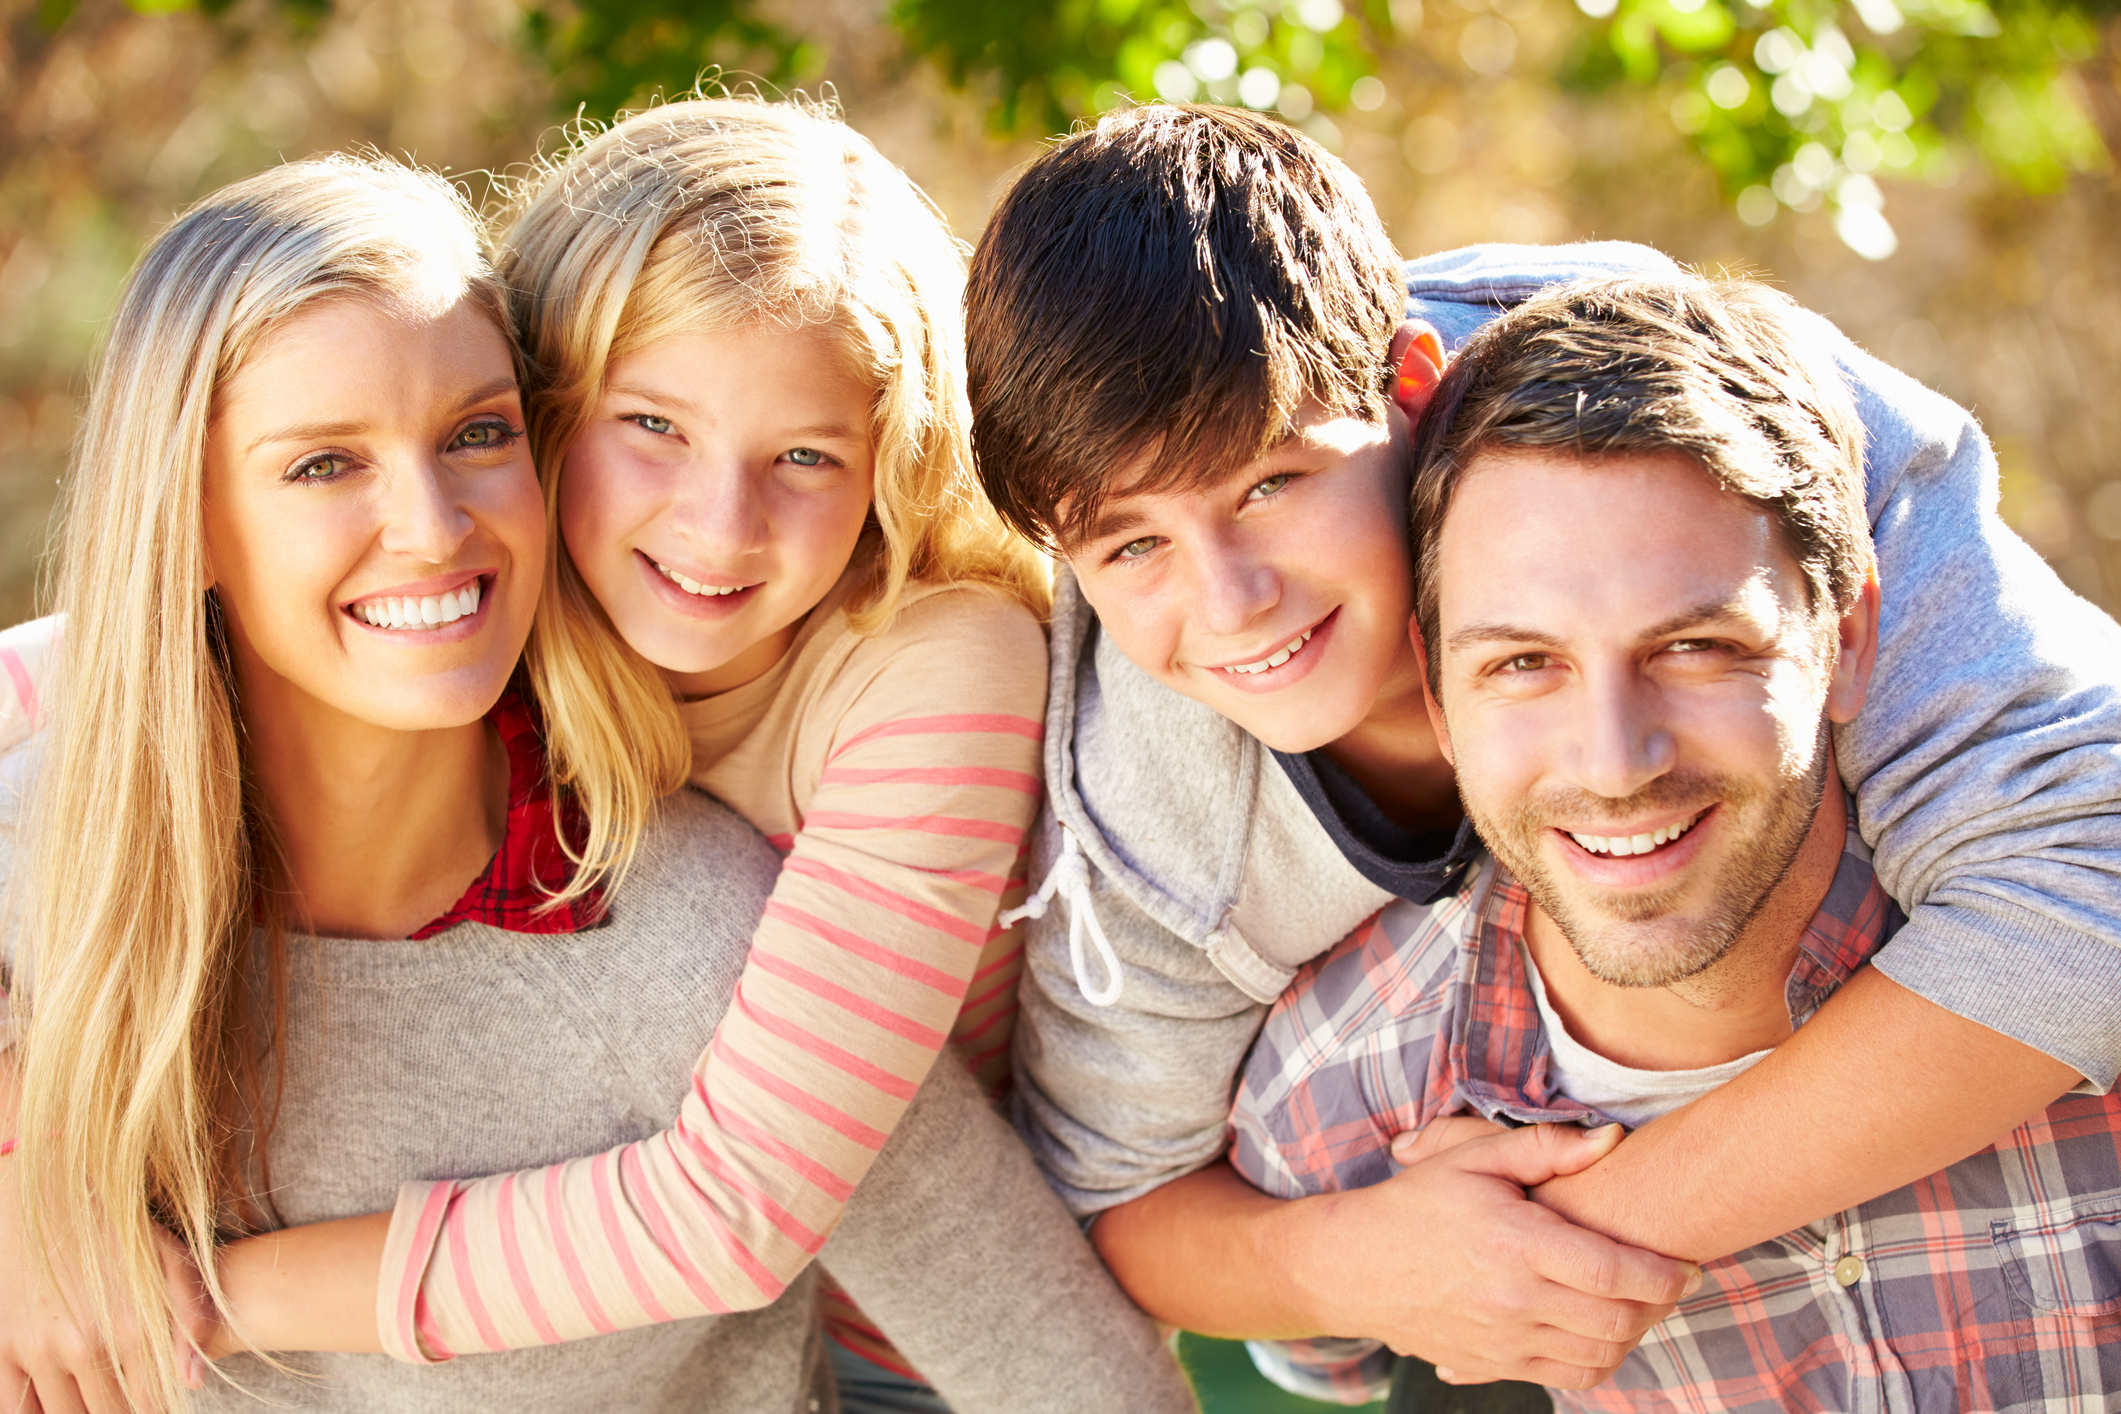 Sealants are applied during childhood and reapplied through adulthood as needed.